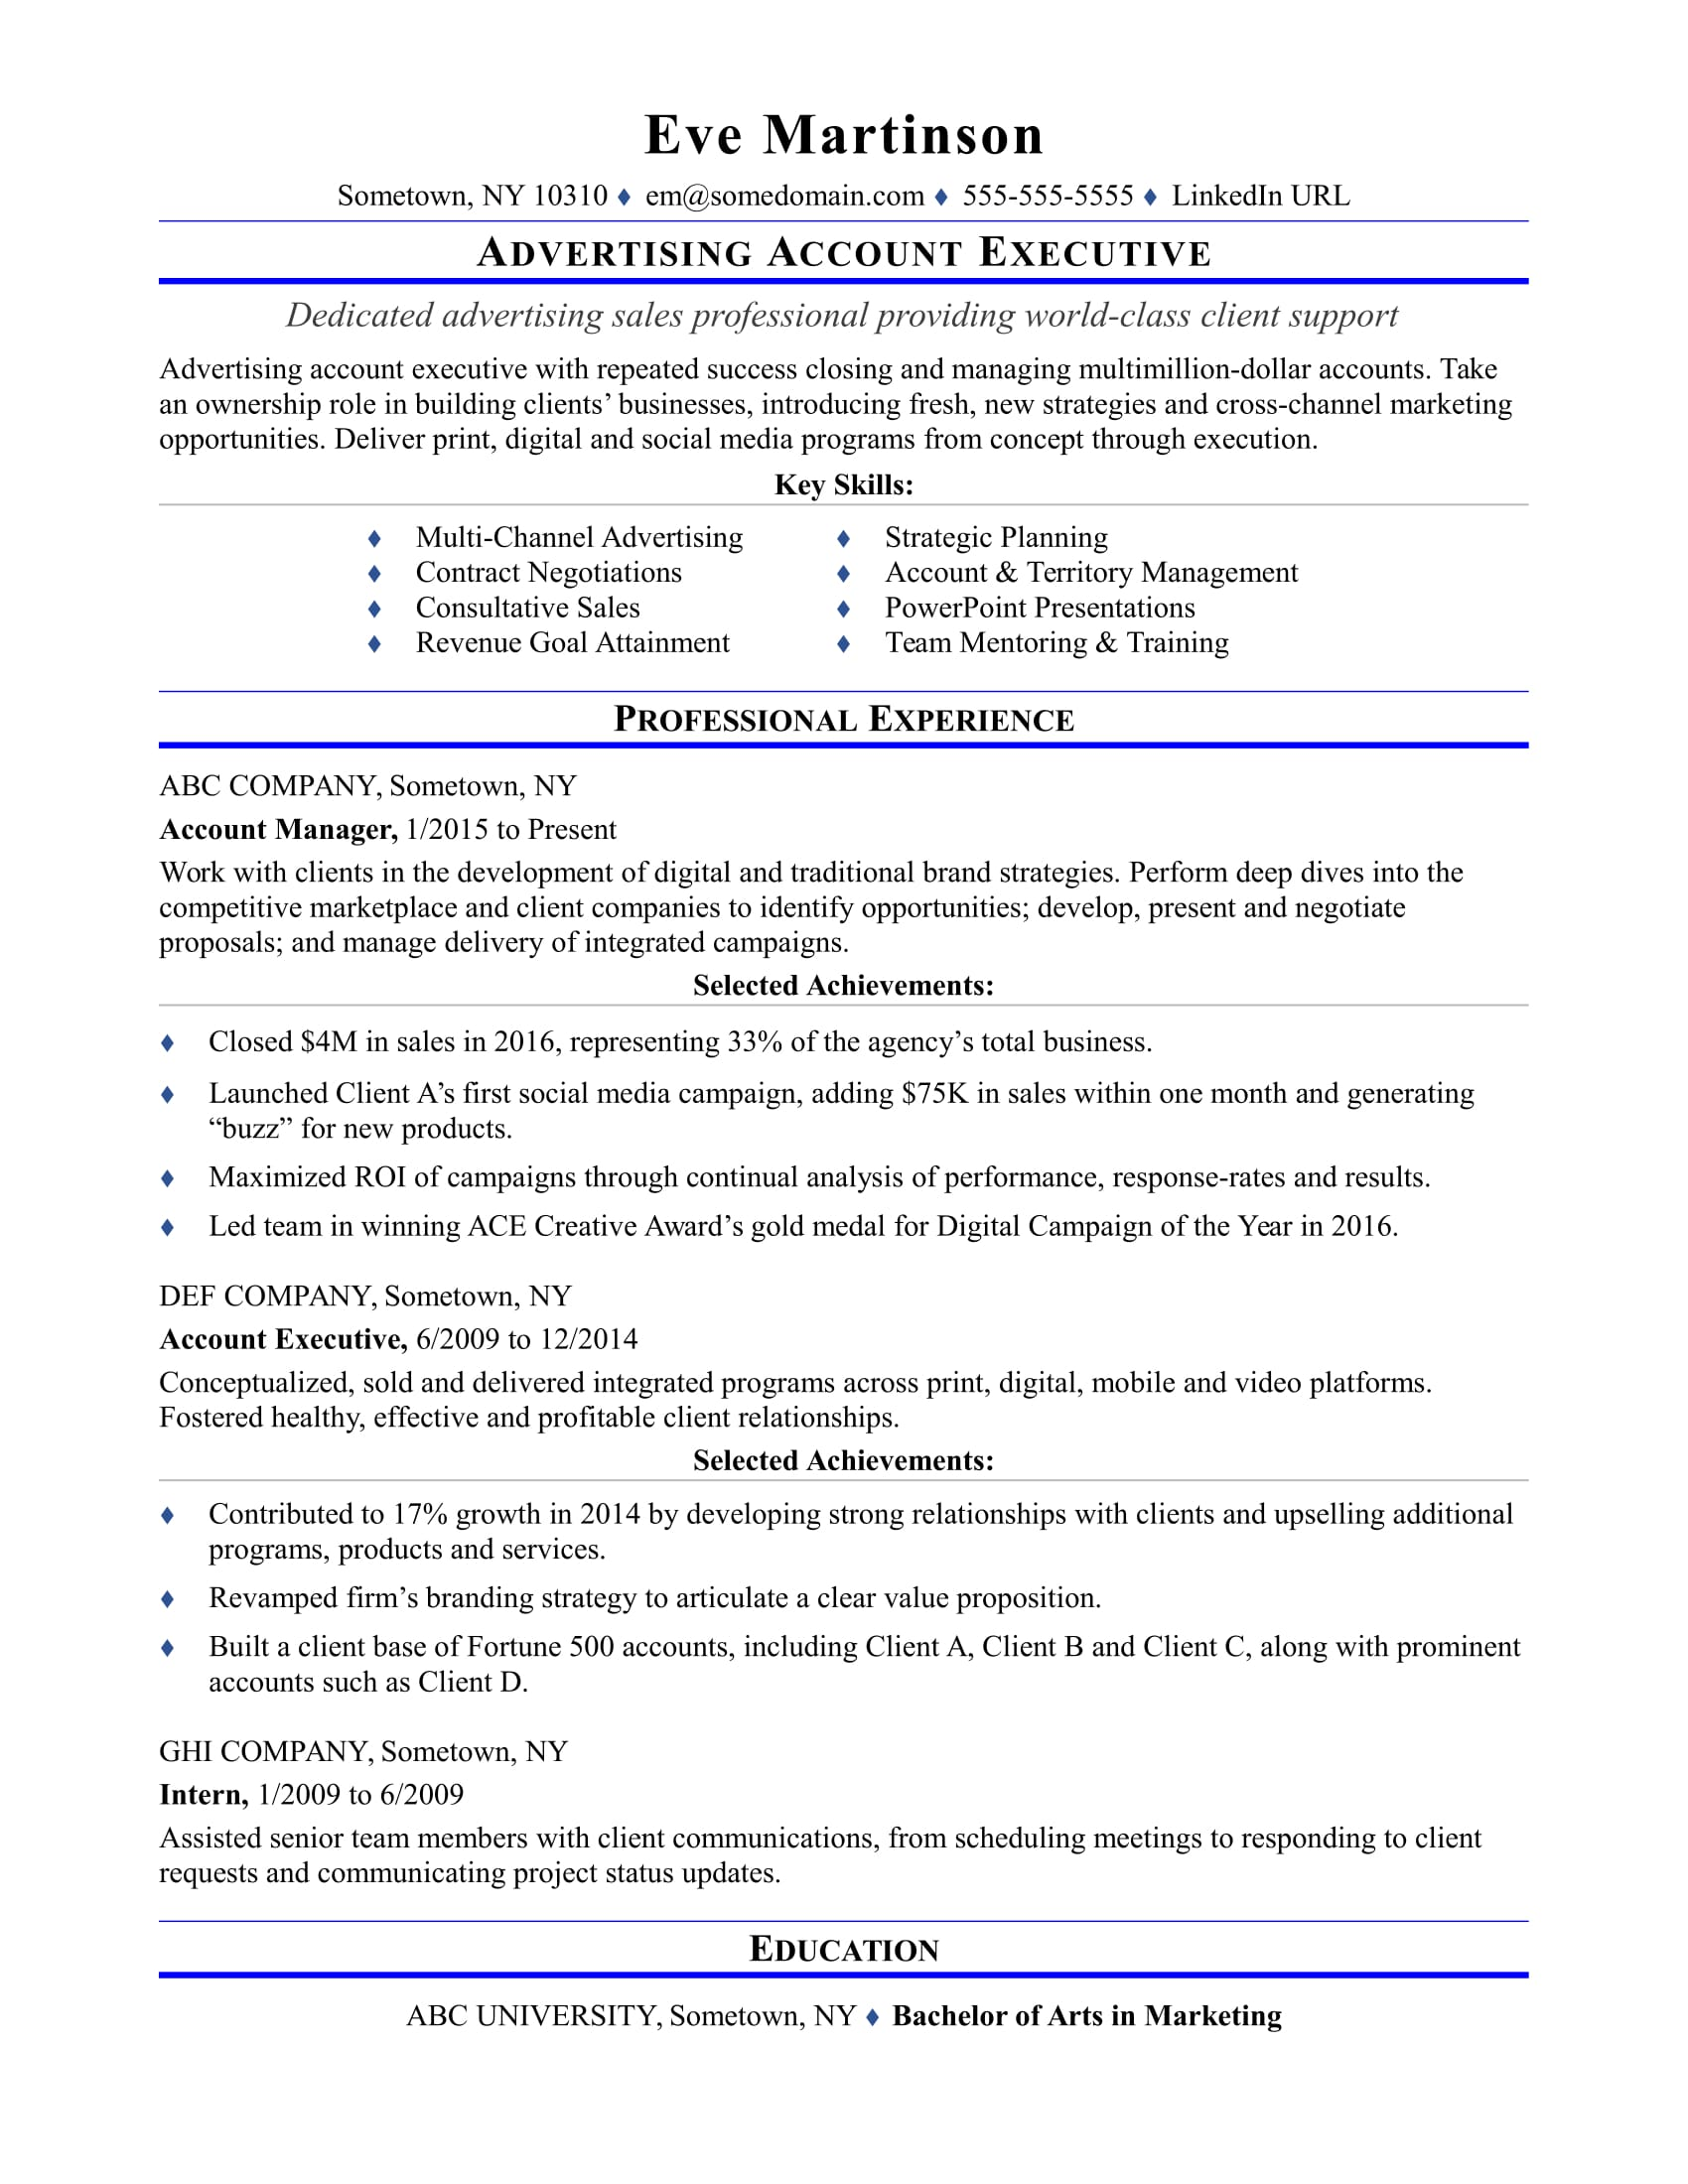 sample resume for an advertising account executive